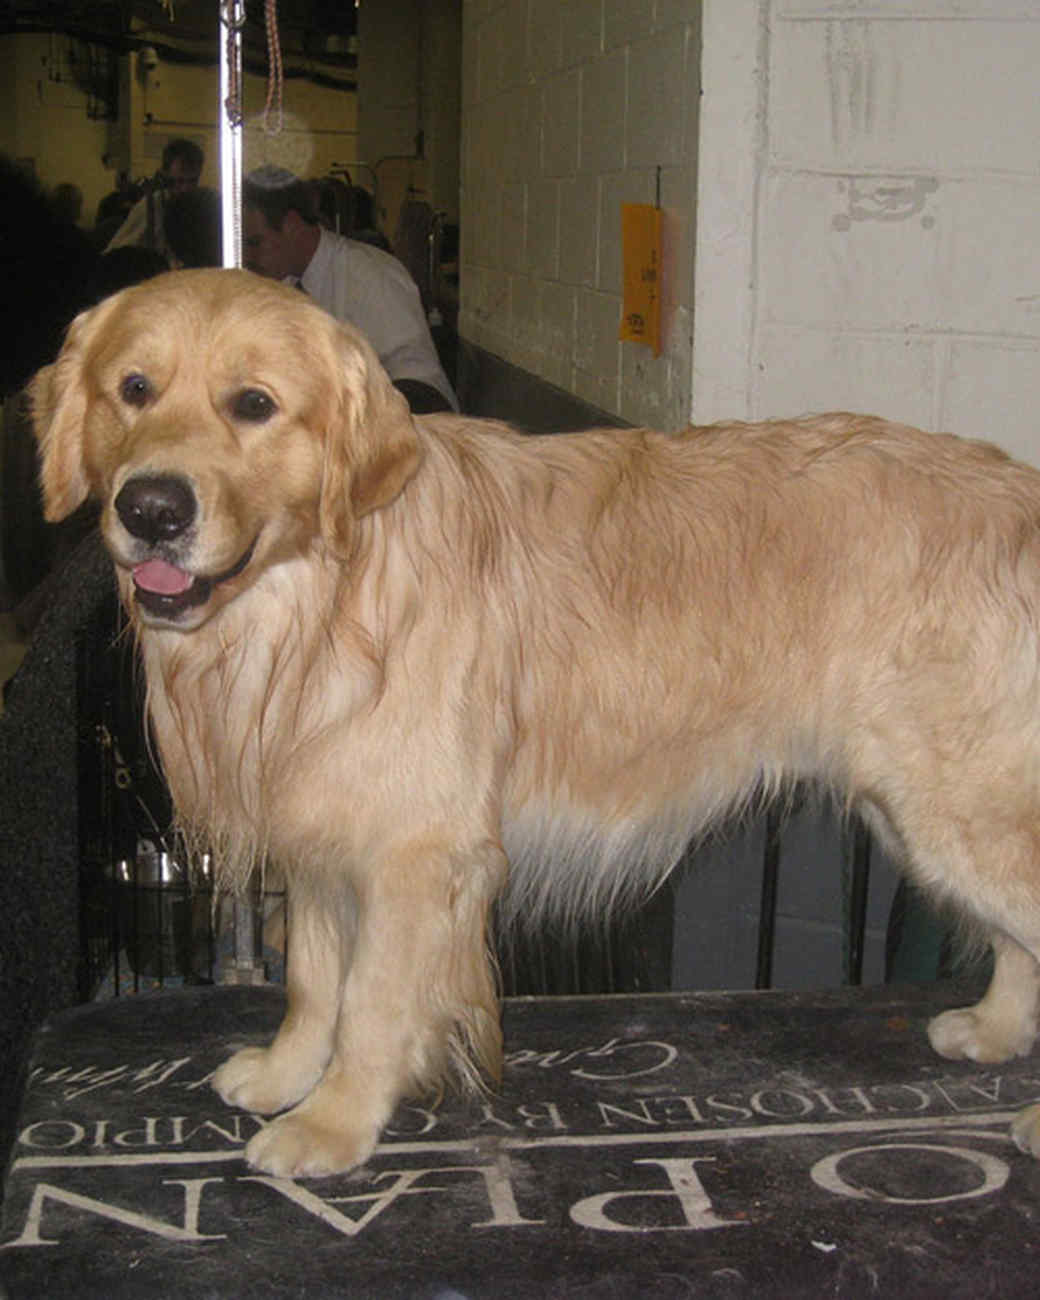 r_0309_golden_retriever.jpg